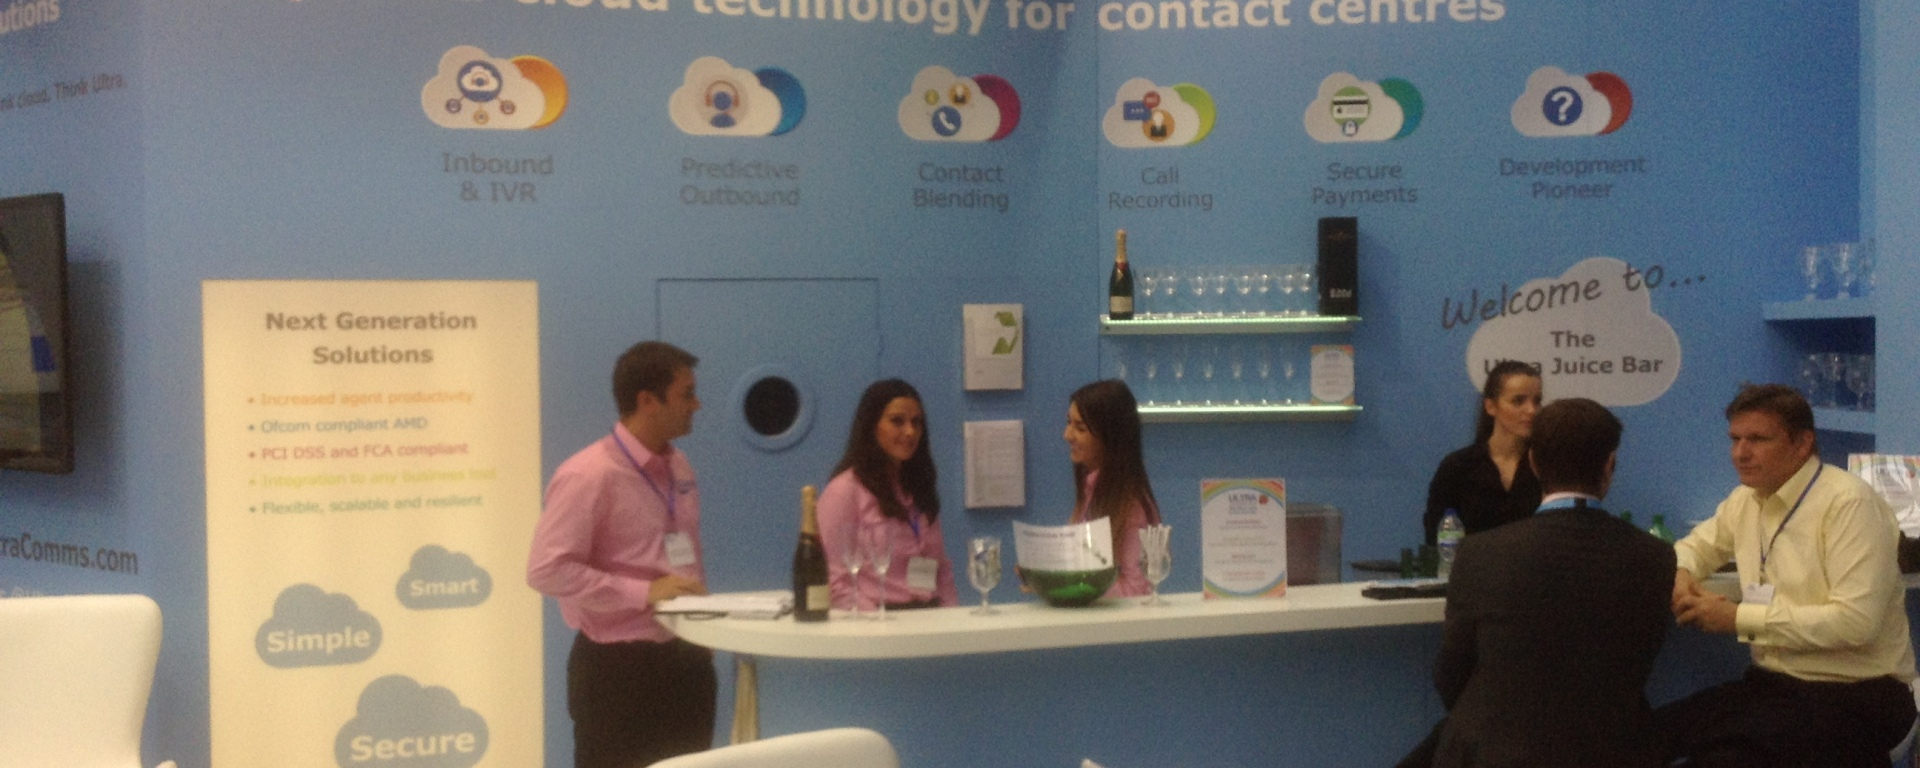 ultra communications best stand at ccexpo14